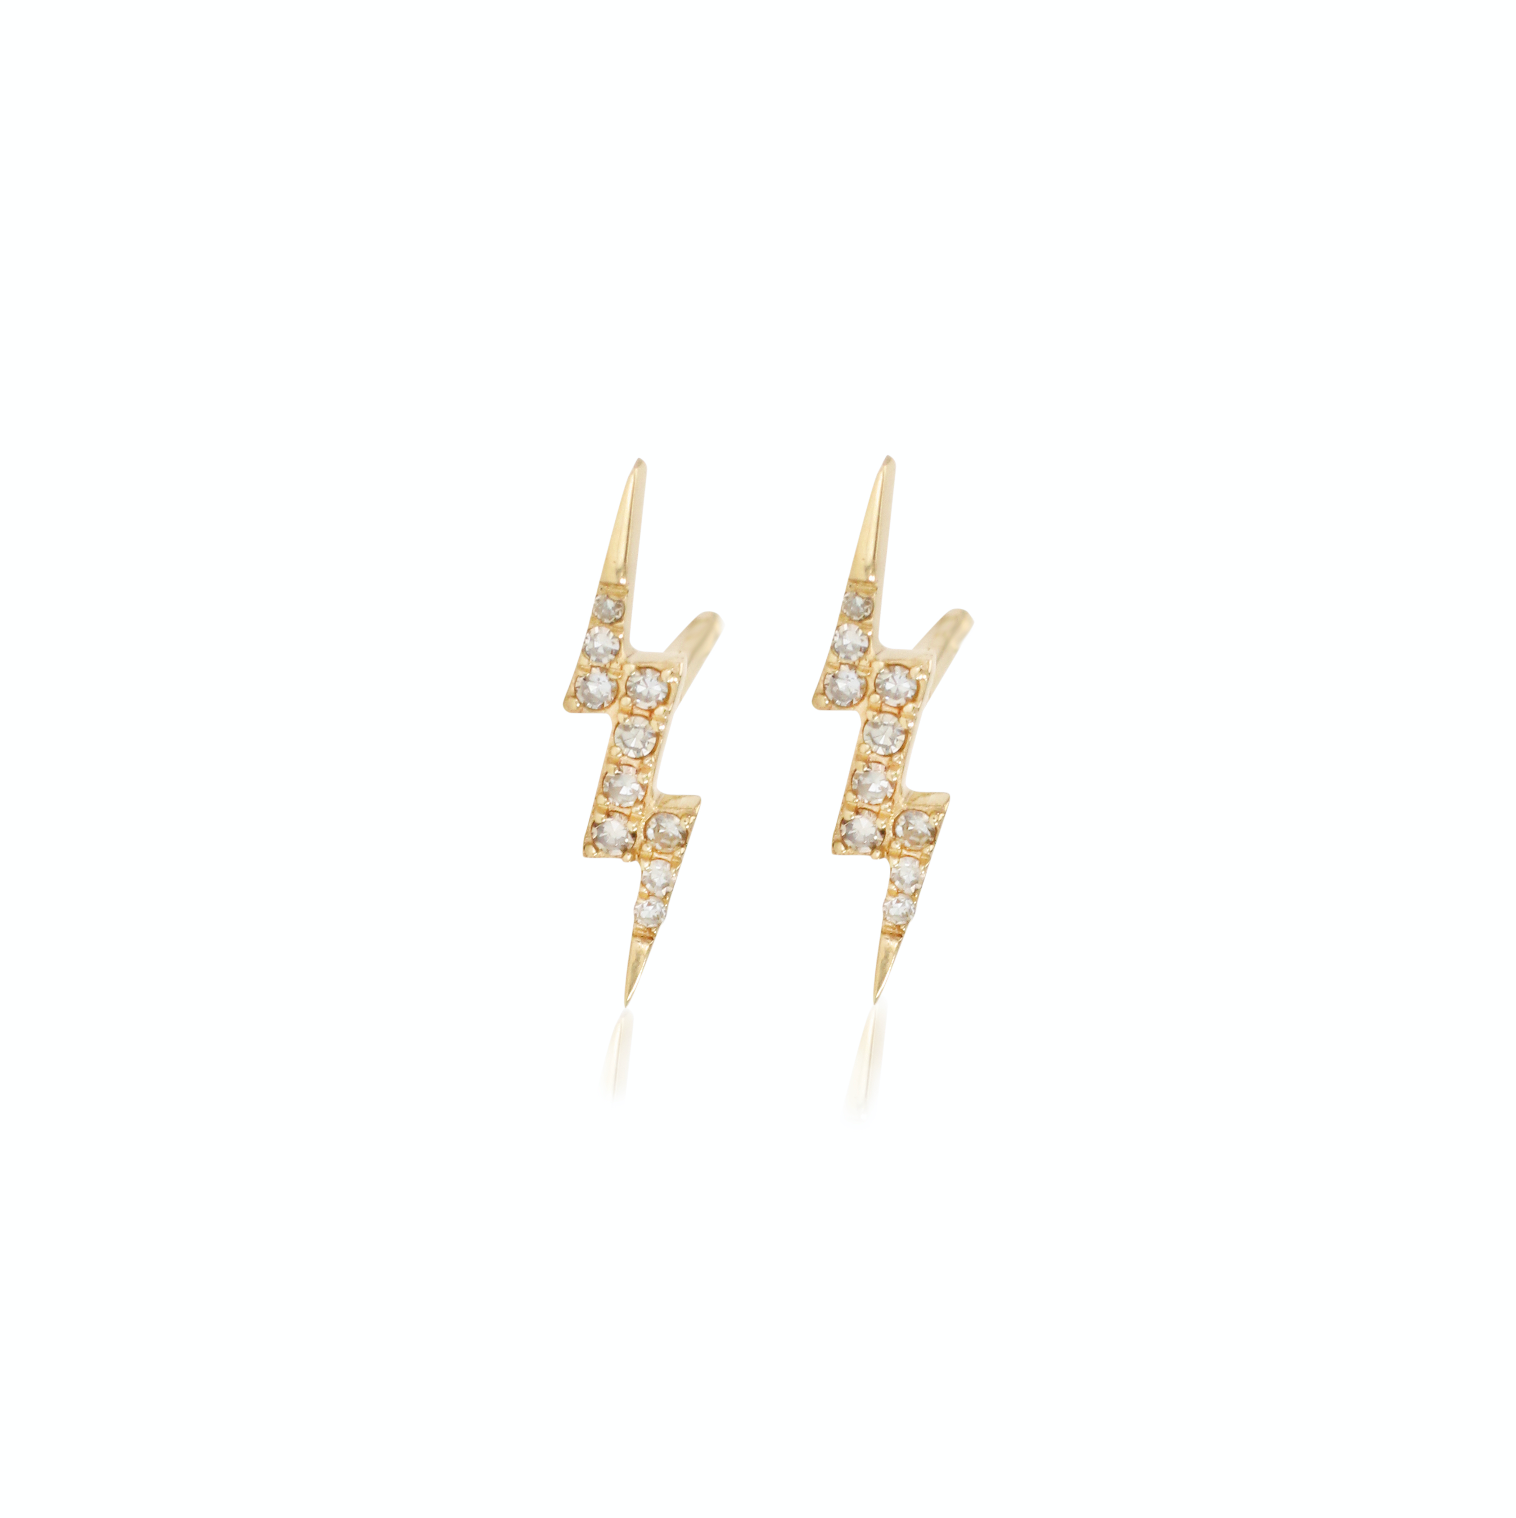 Yellow Gold Lightning Bolt Earrings Delpozzojewelry